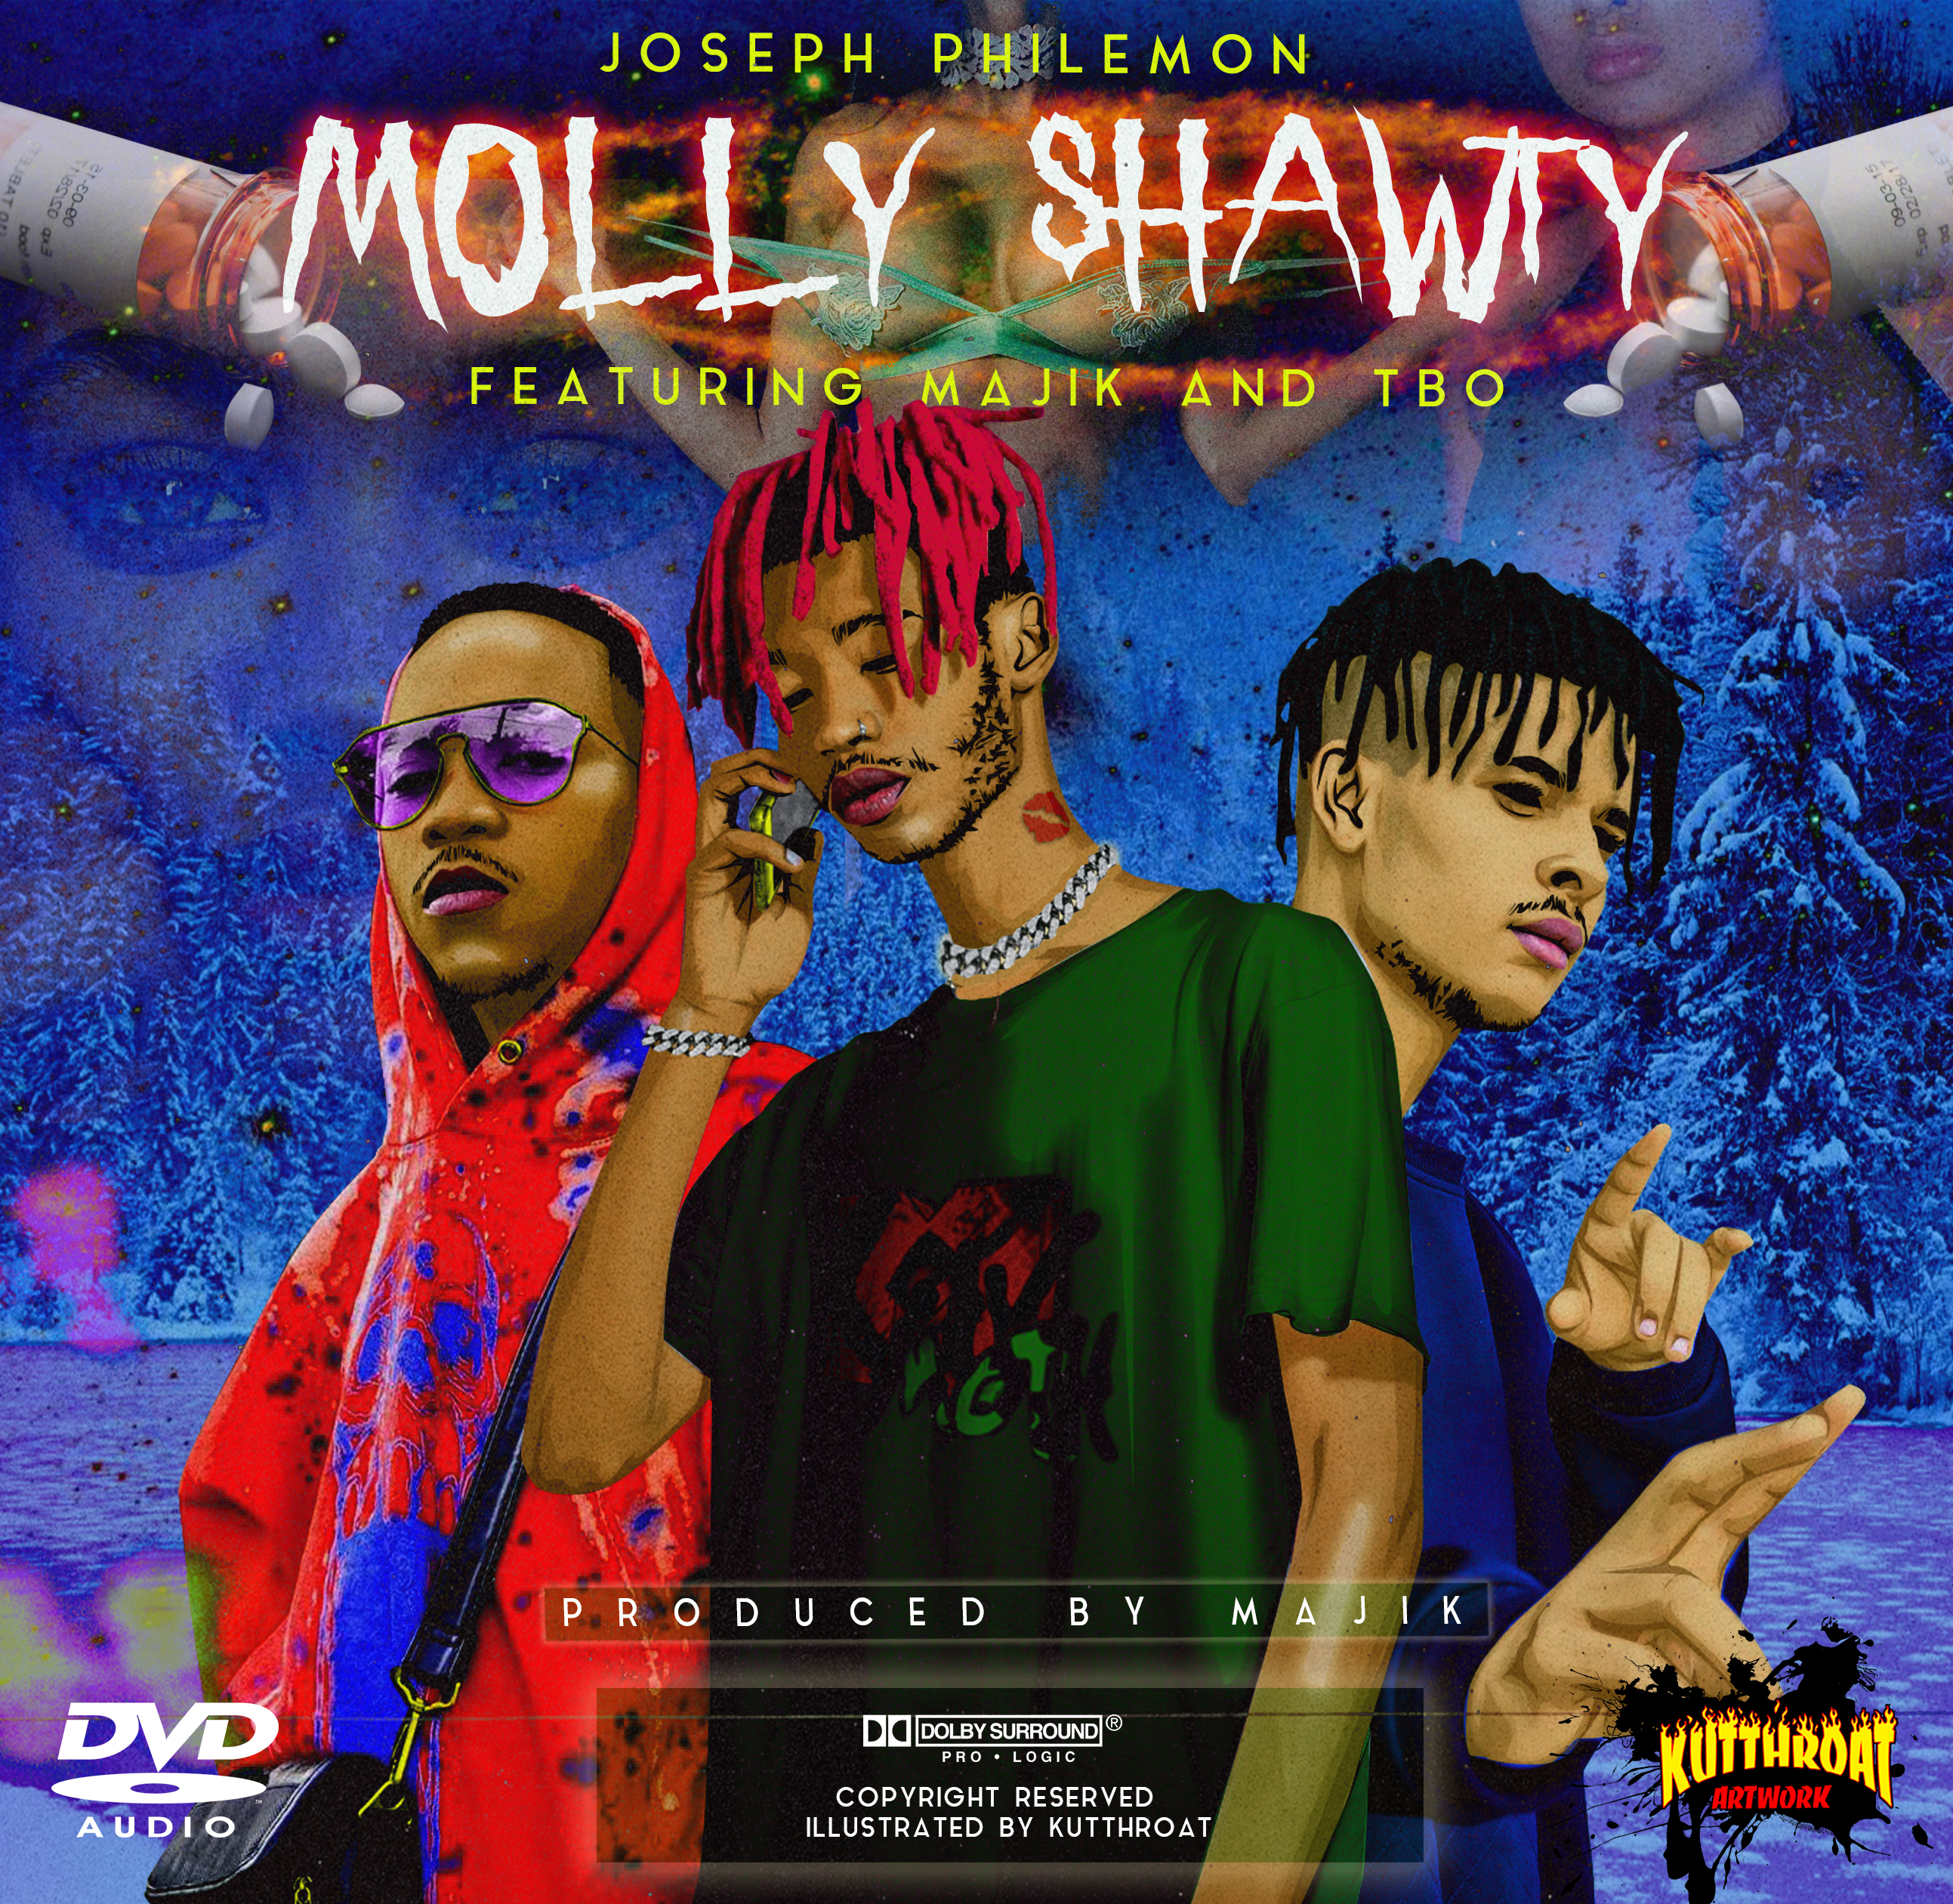 joseph philemon Listen To Joseph Philemon's New 'Molly Shawty' Single Ft. Majik & TBO image1